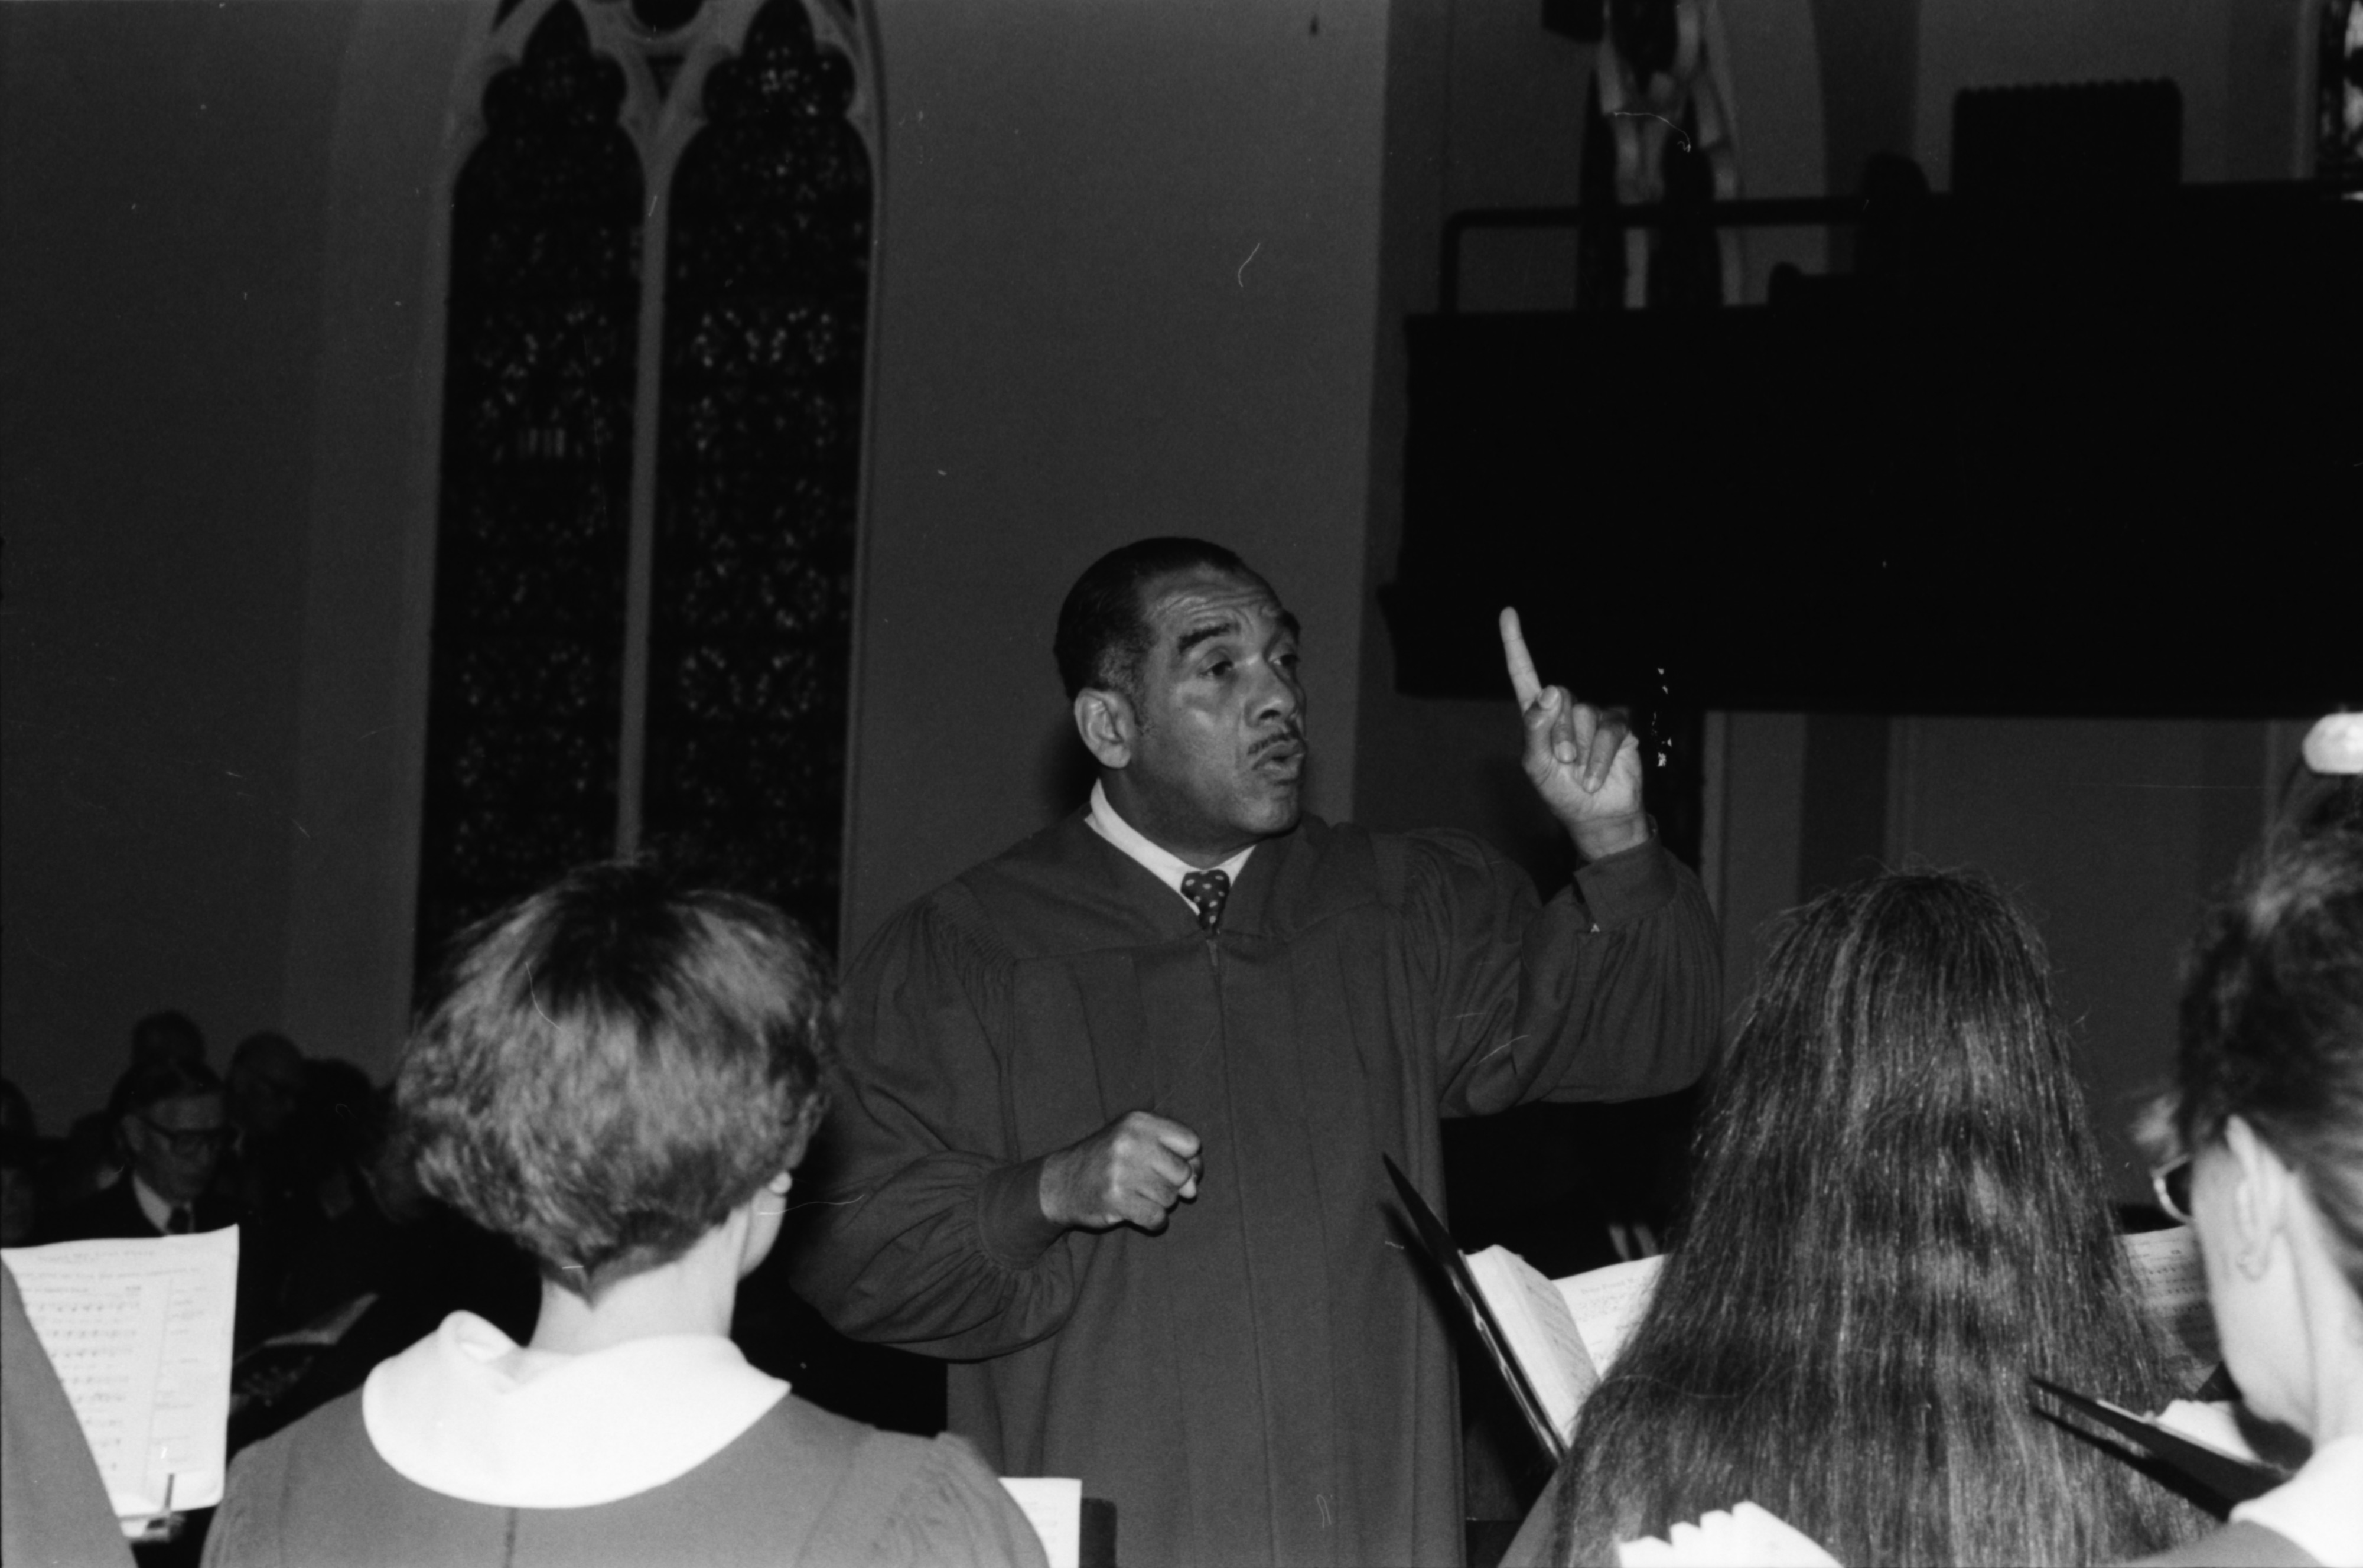 Willis Patterson Directs Church Choir, February 1990 image